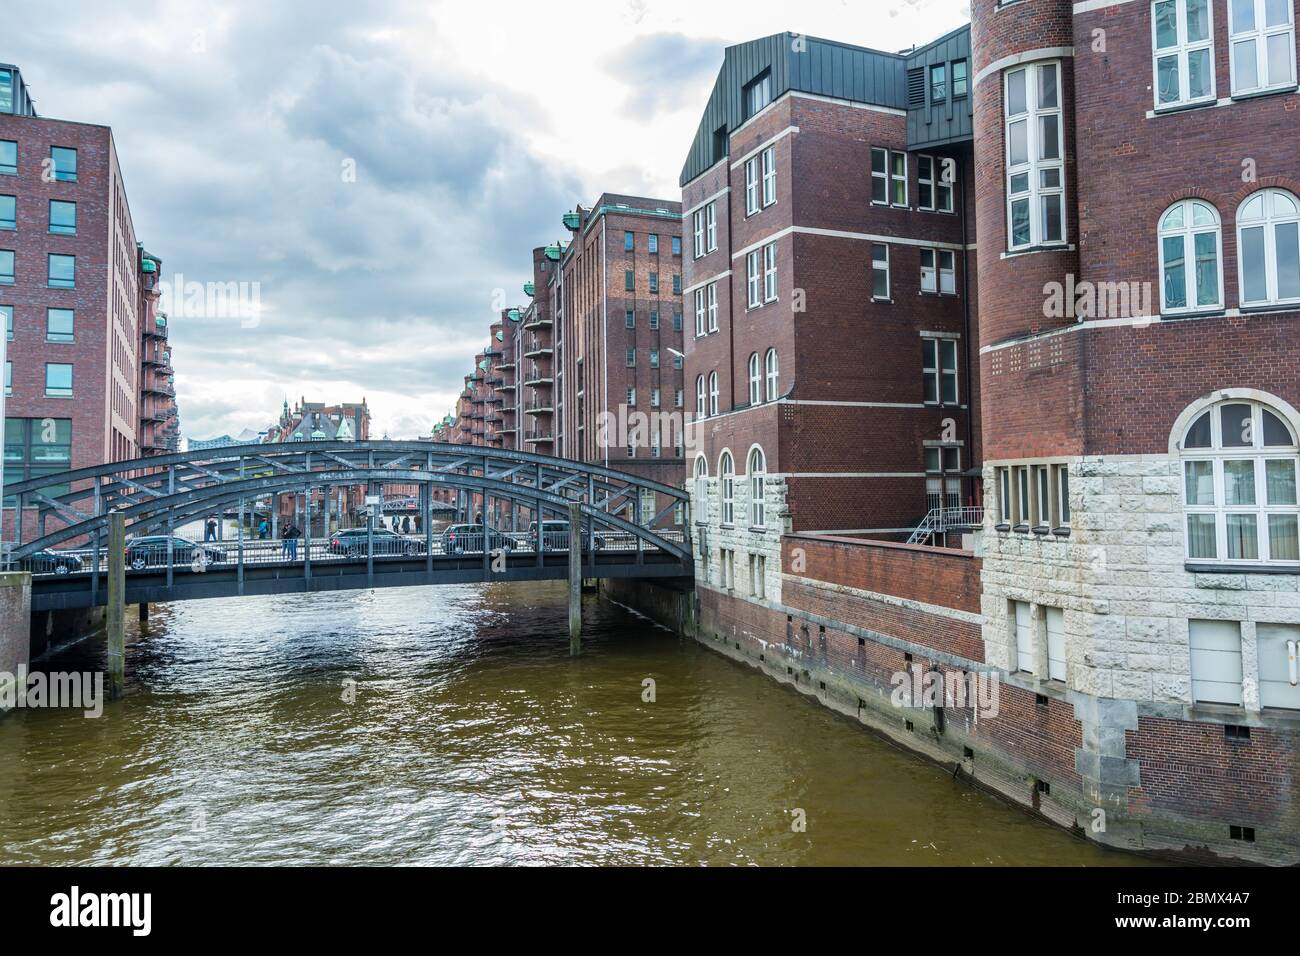 The Speicherstadt in Hamburg of Germany,  the largest warehouse district in the world. Stock Photo